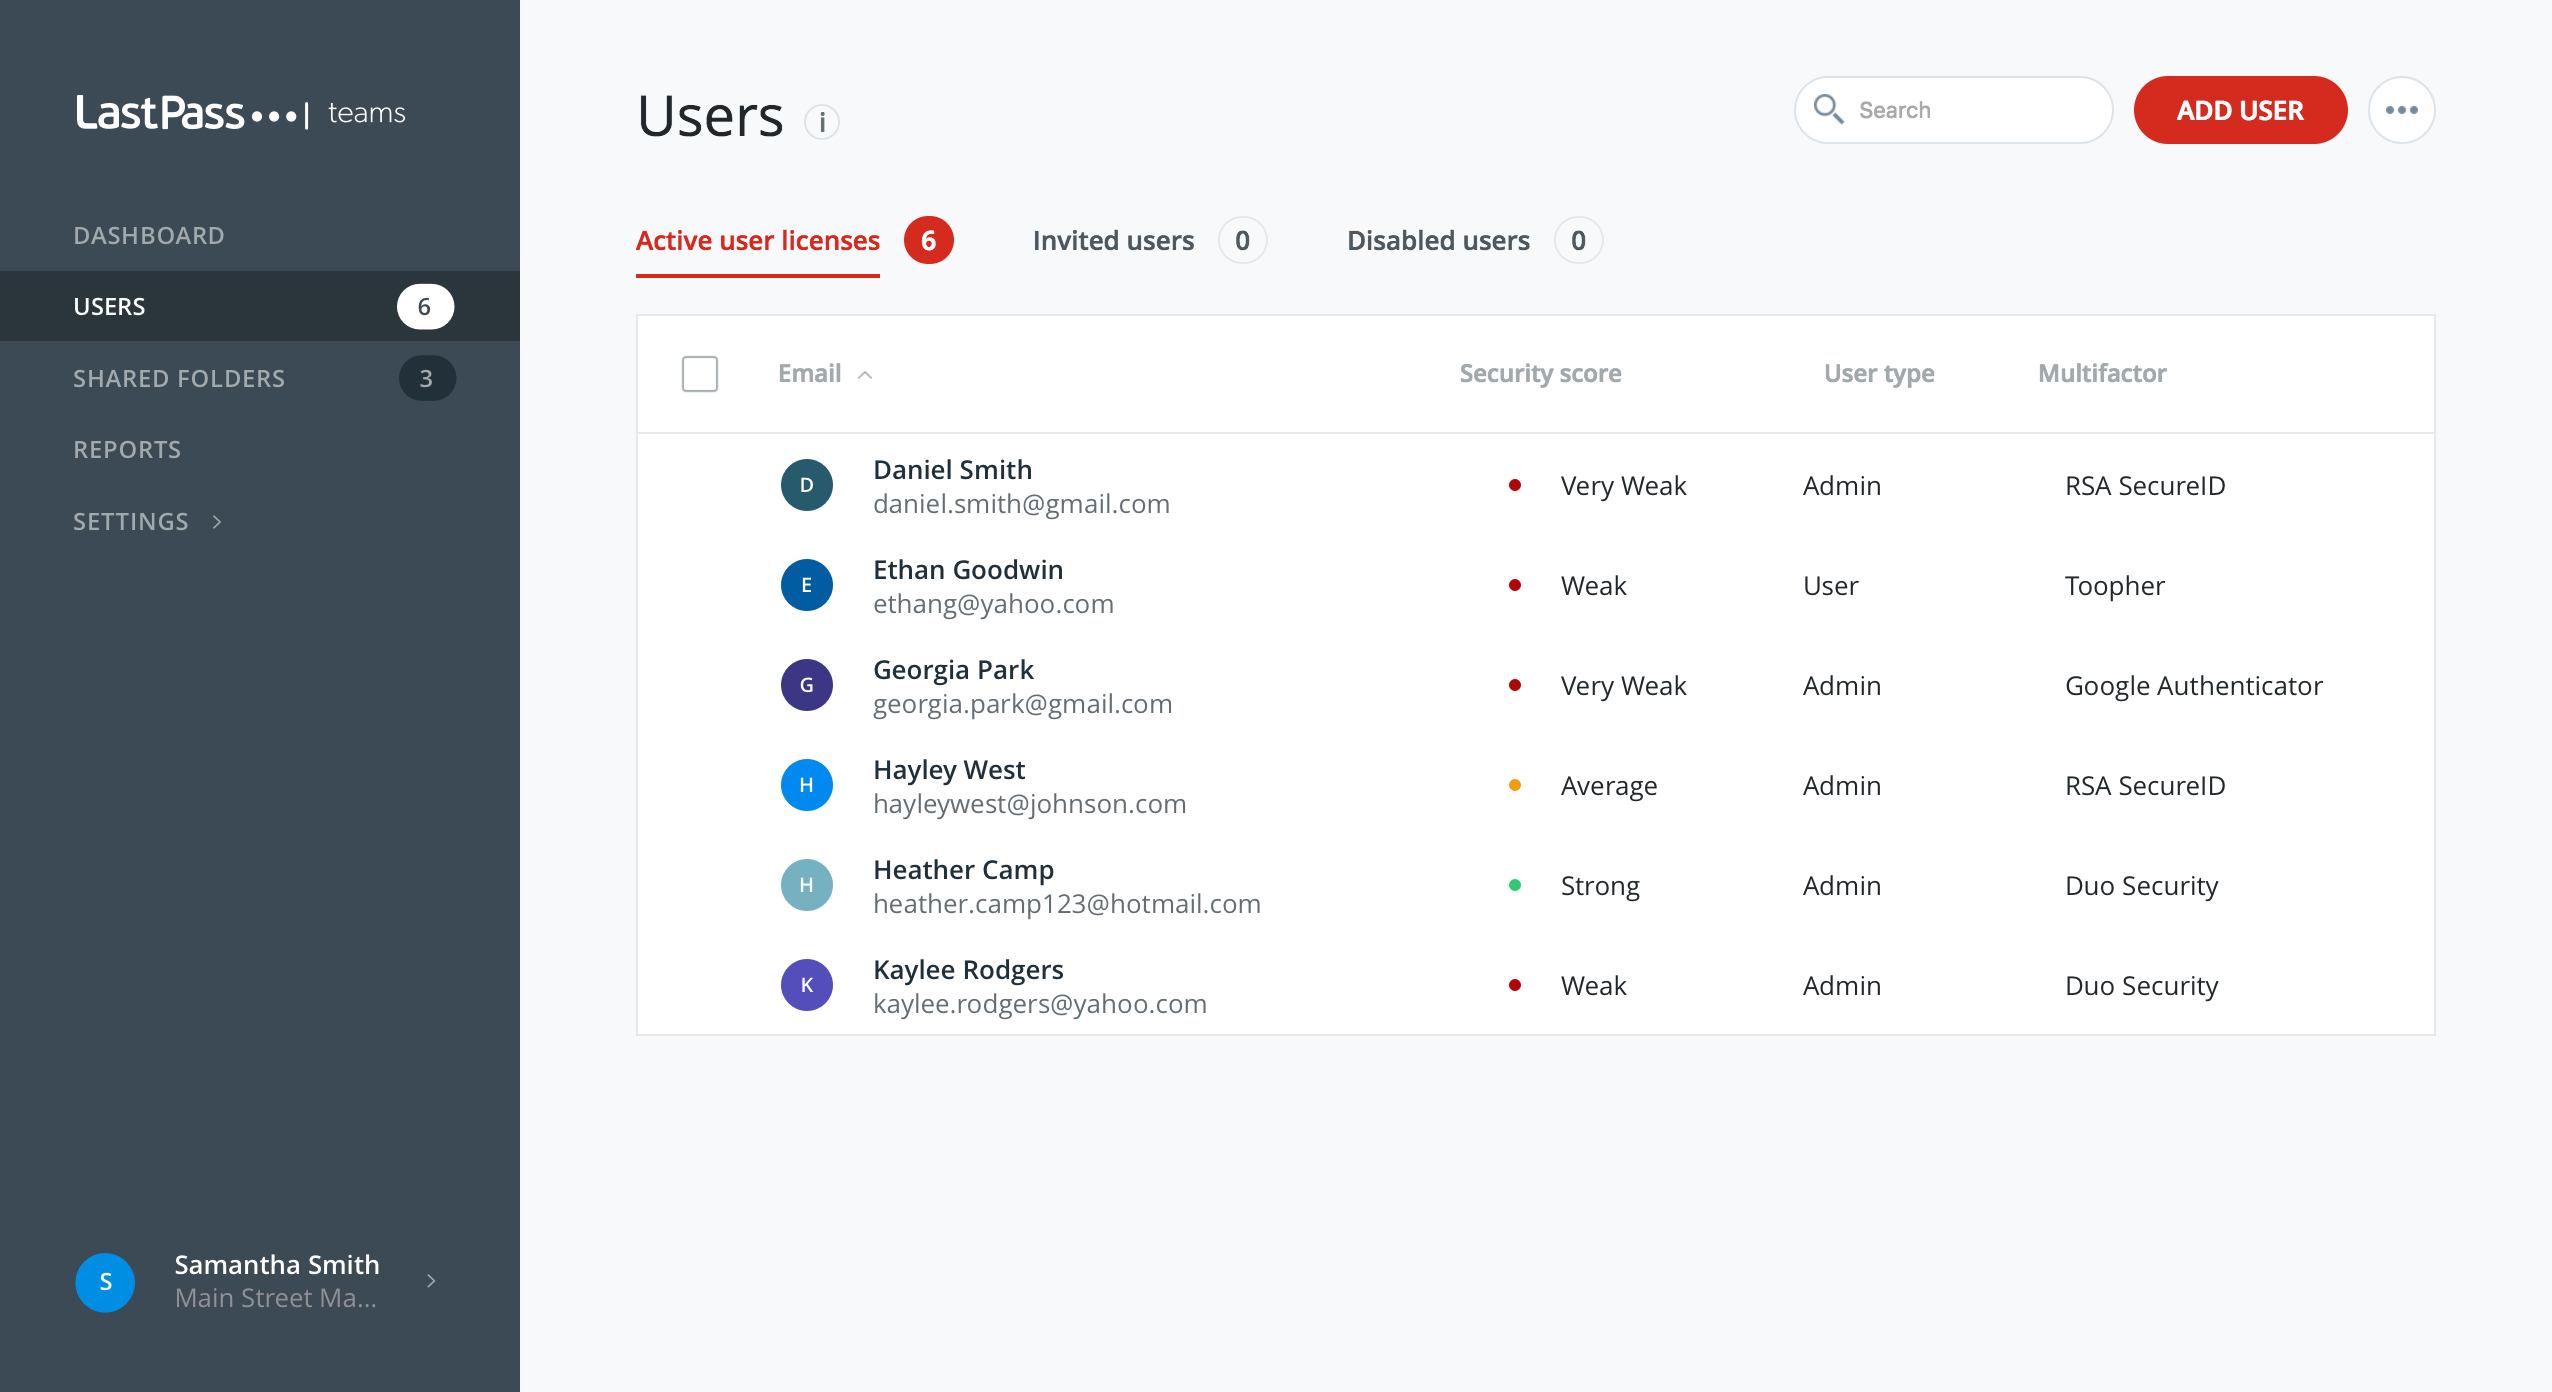 LastPass Enterprise - Active user licenses